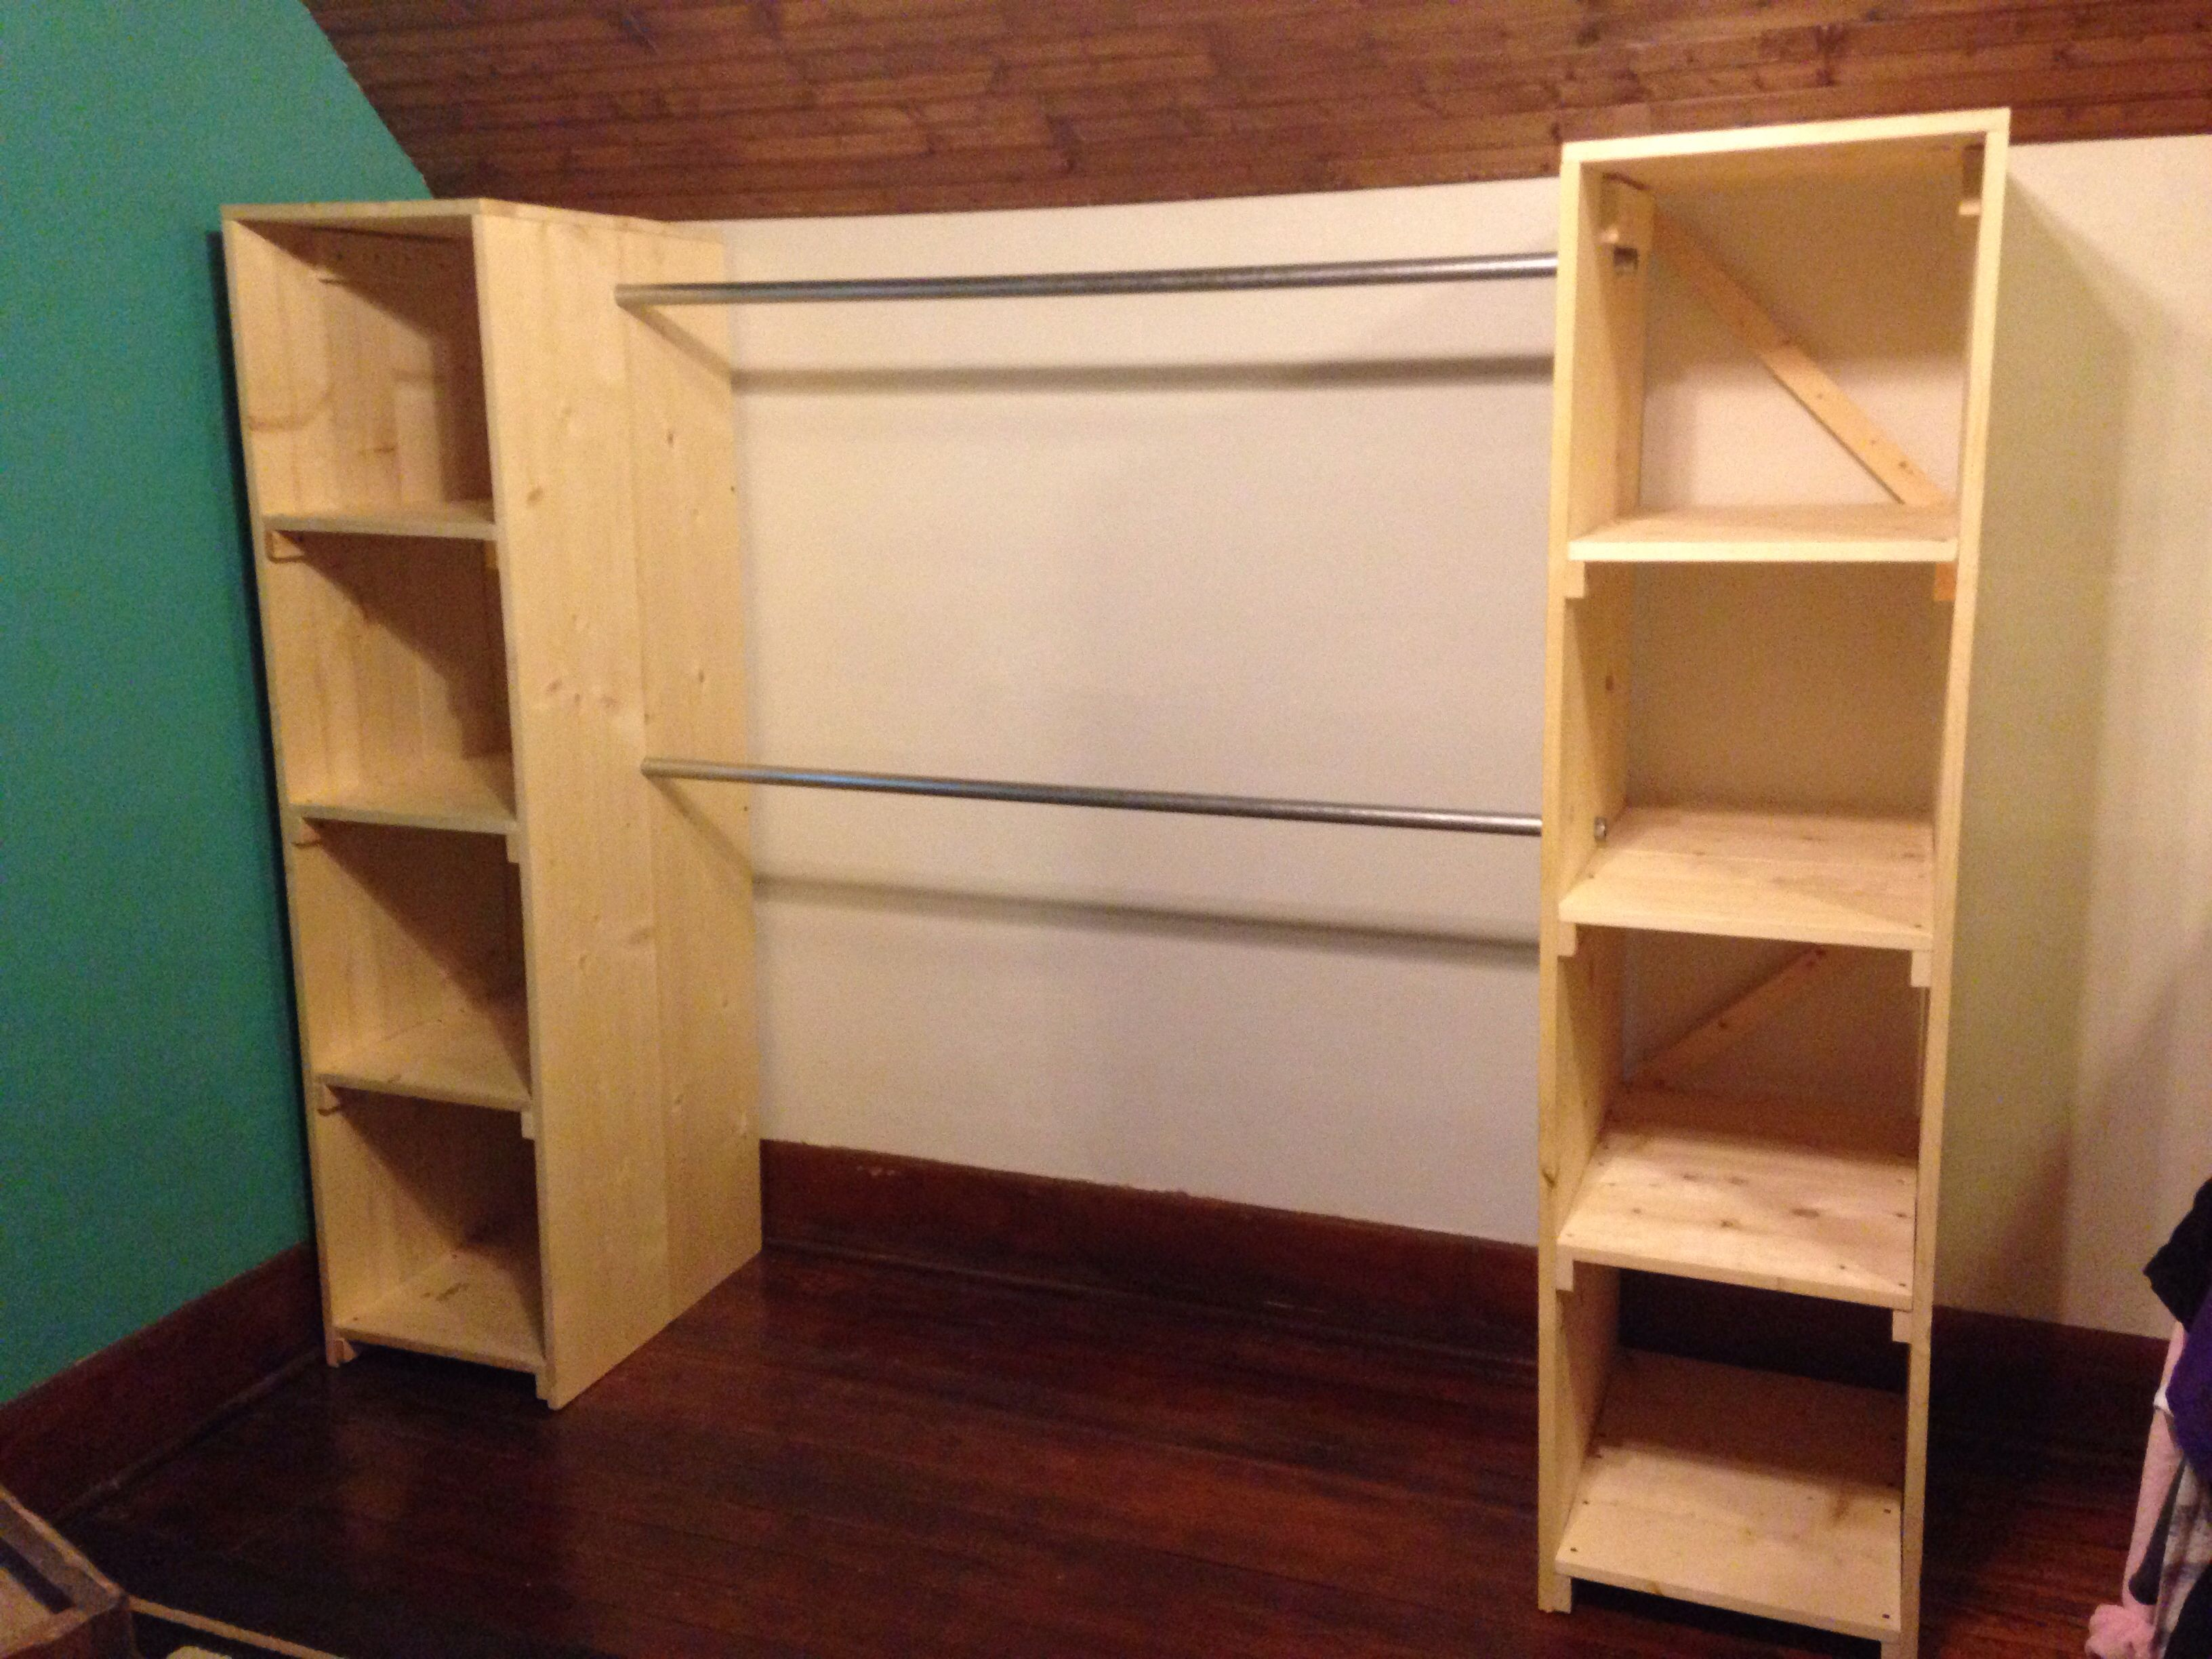 My Free Standing Closet Is Finished! Itu0027s Perfect For Our Small Home With  No Storage